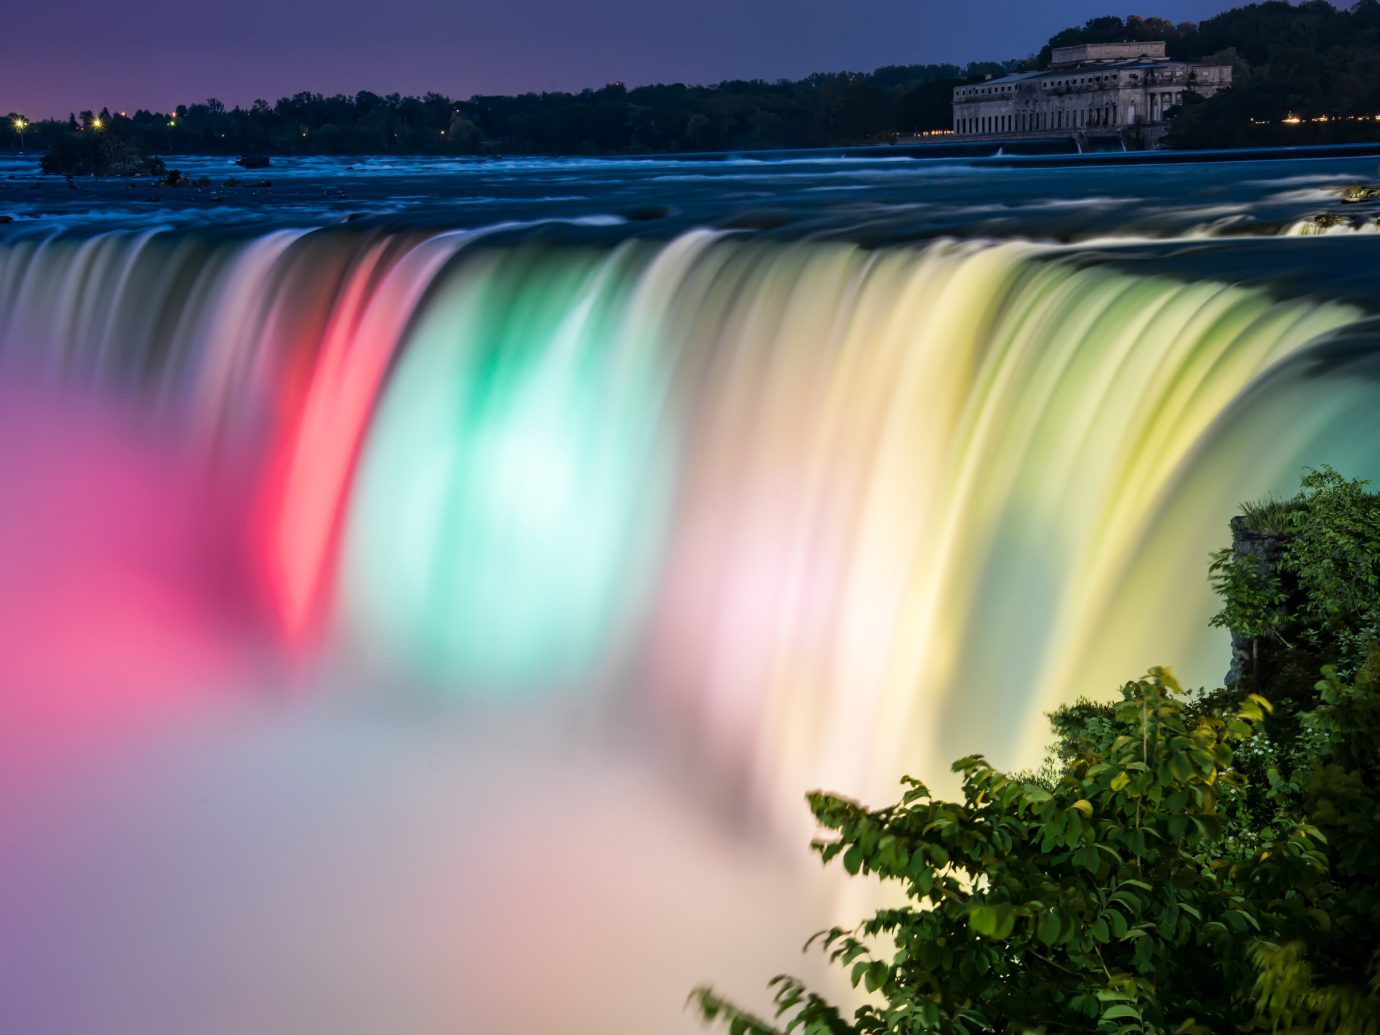 Hotels Offbeat Trip Ideas tree outdoor Nature atmospheric phenomenon reflection water atmosphere morning rainbow water feature sunlight Waterfall colorful colored